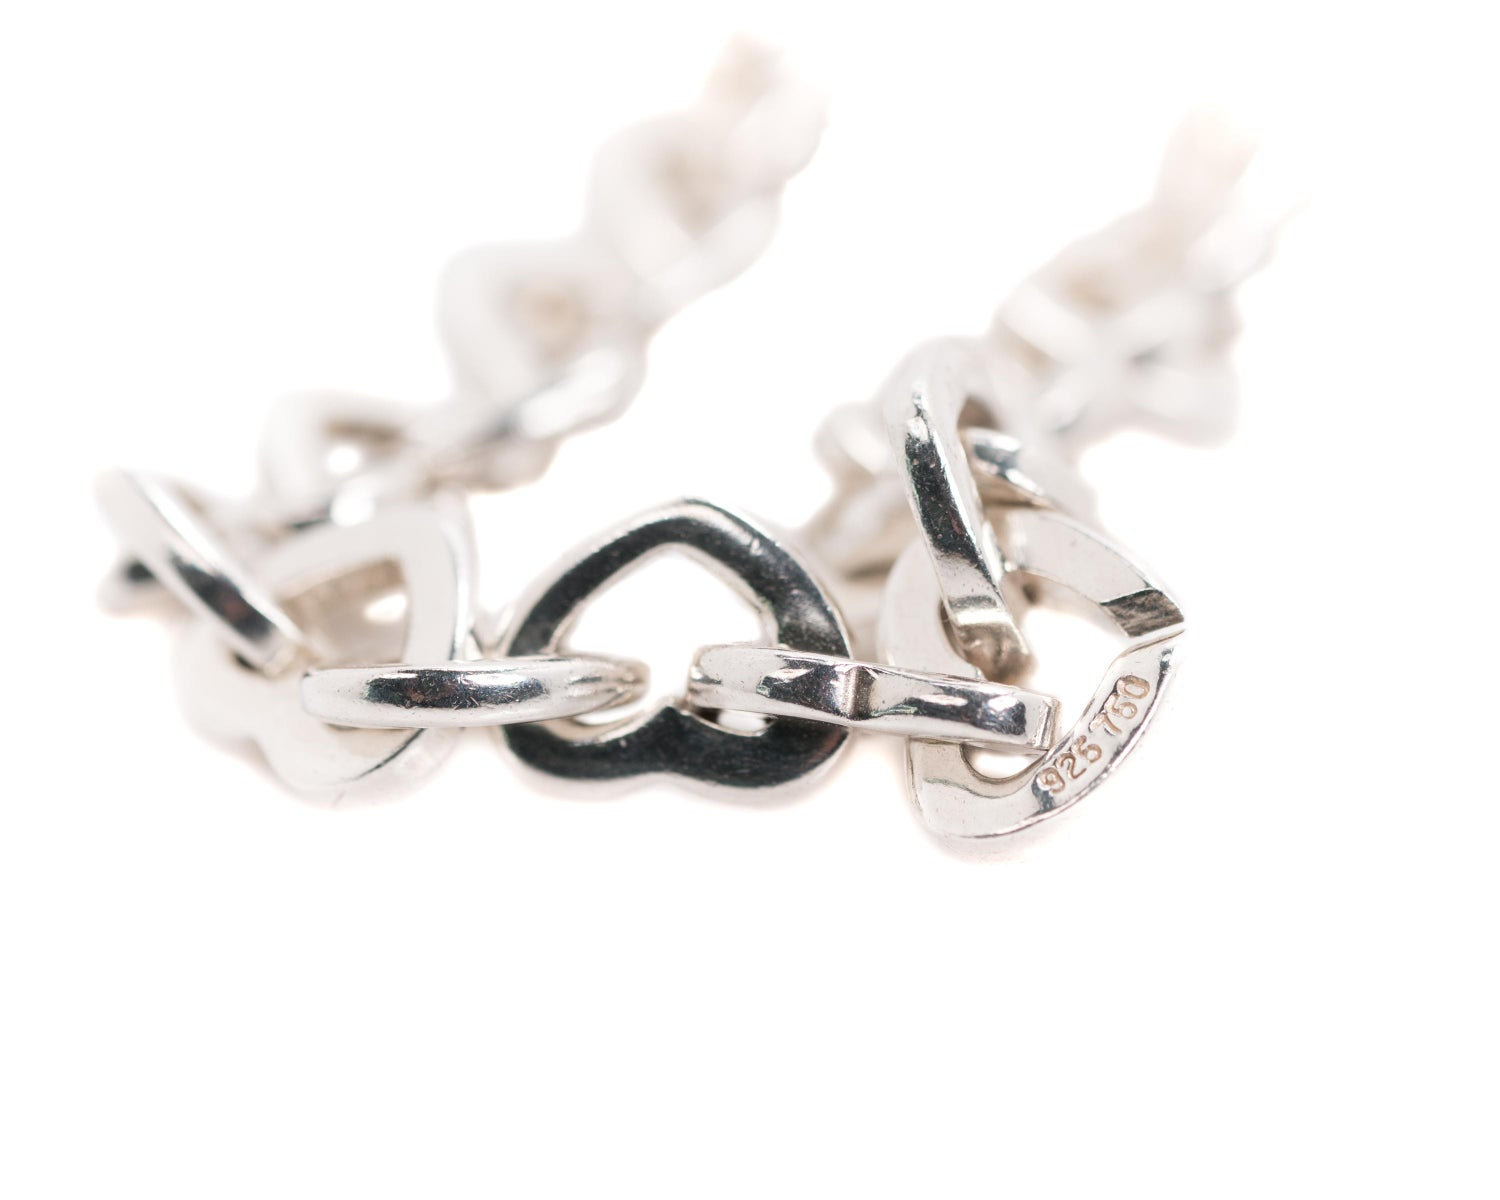 6f0938f84 Tiffany and Co. Heart Link Bracelet, Sterling Silver and 18 Karat Yellow  Gold For Sale at 1stdibs